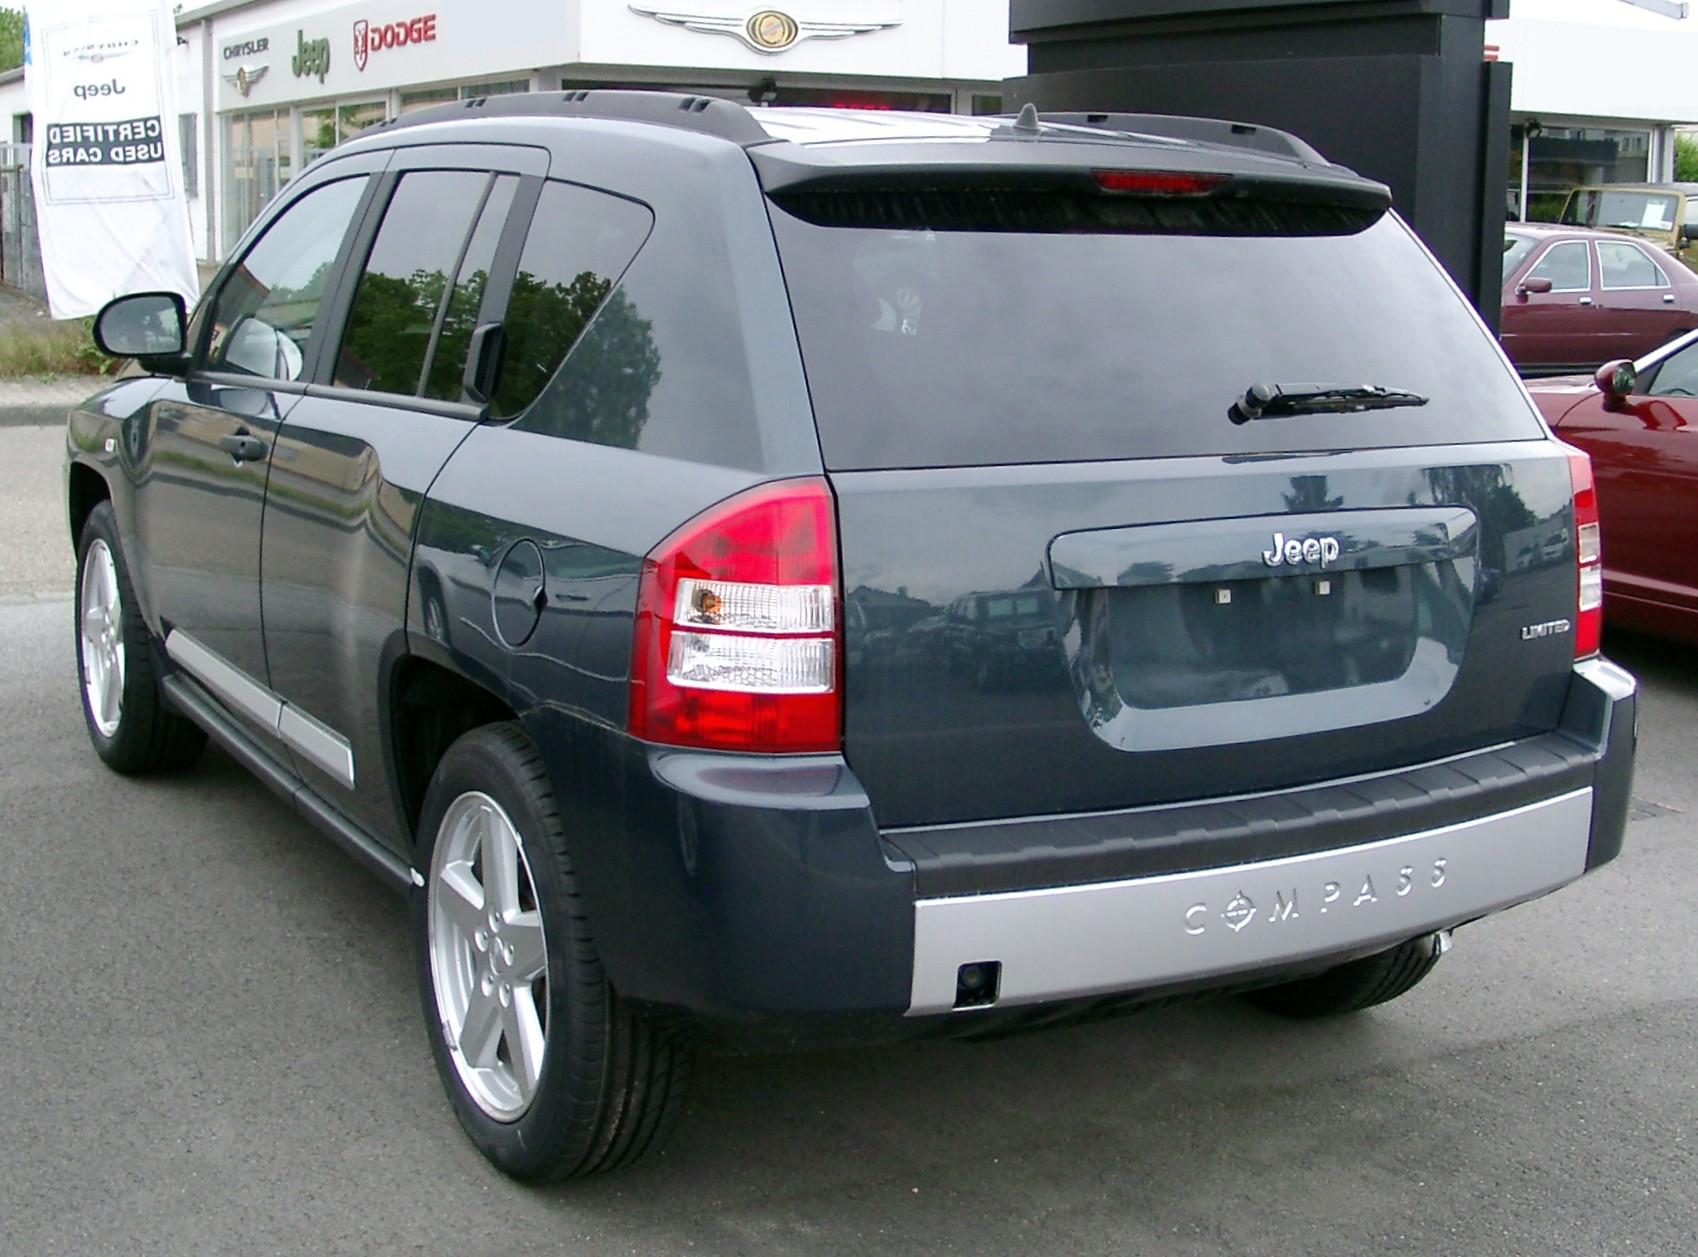 jeep compass rear 2008 pin x cars. Black Bedroom Furniture Sets. Home Design Ideas